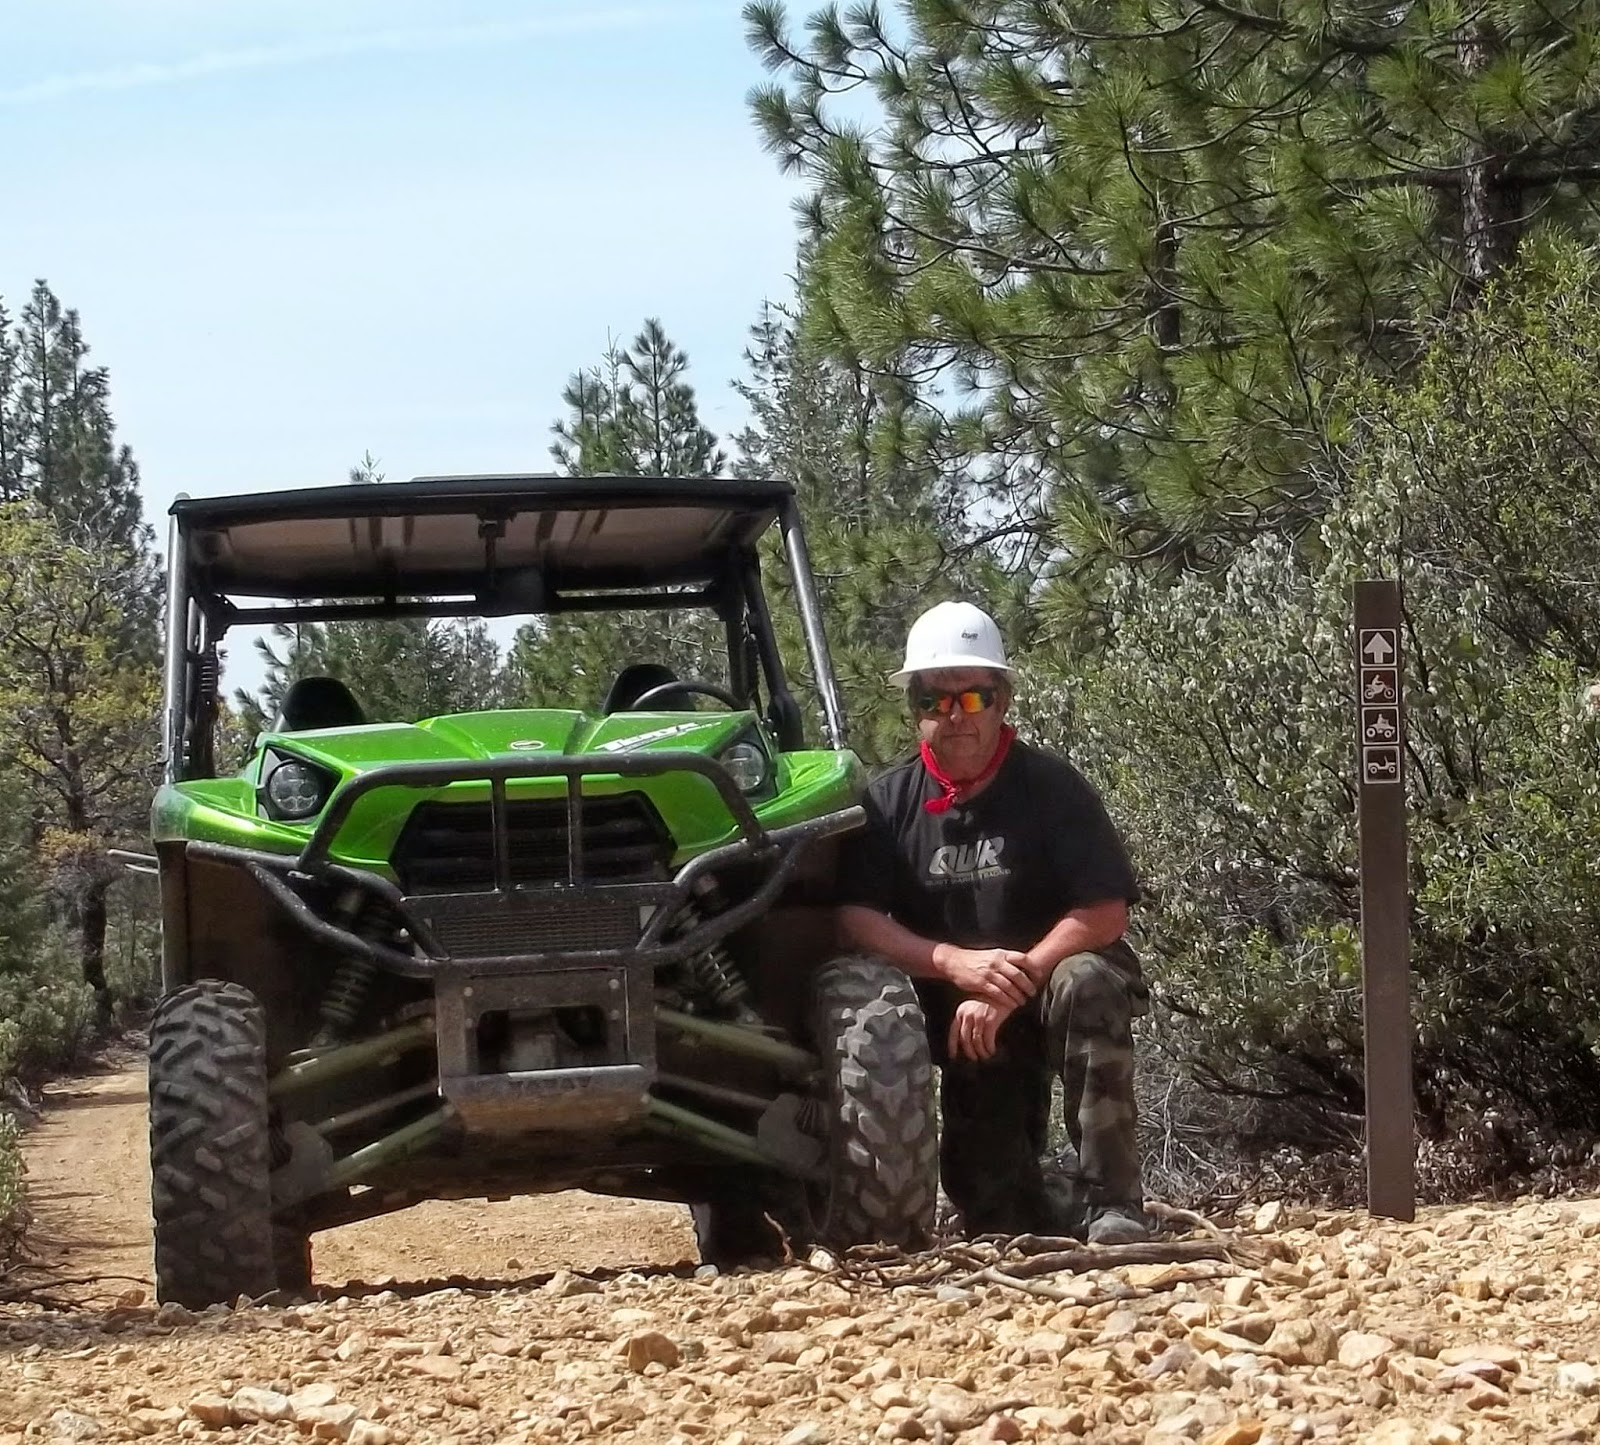 OHV MEETING ALERT - Attend OHMVR Commission Tour at Pismo (Dec. 11) and Full Commission Meeting (Dec. 12)